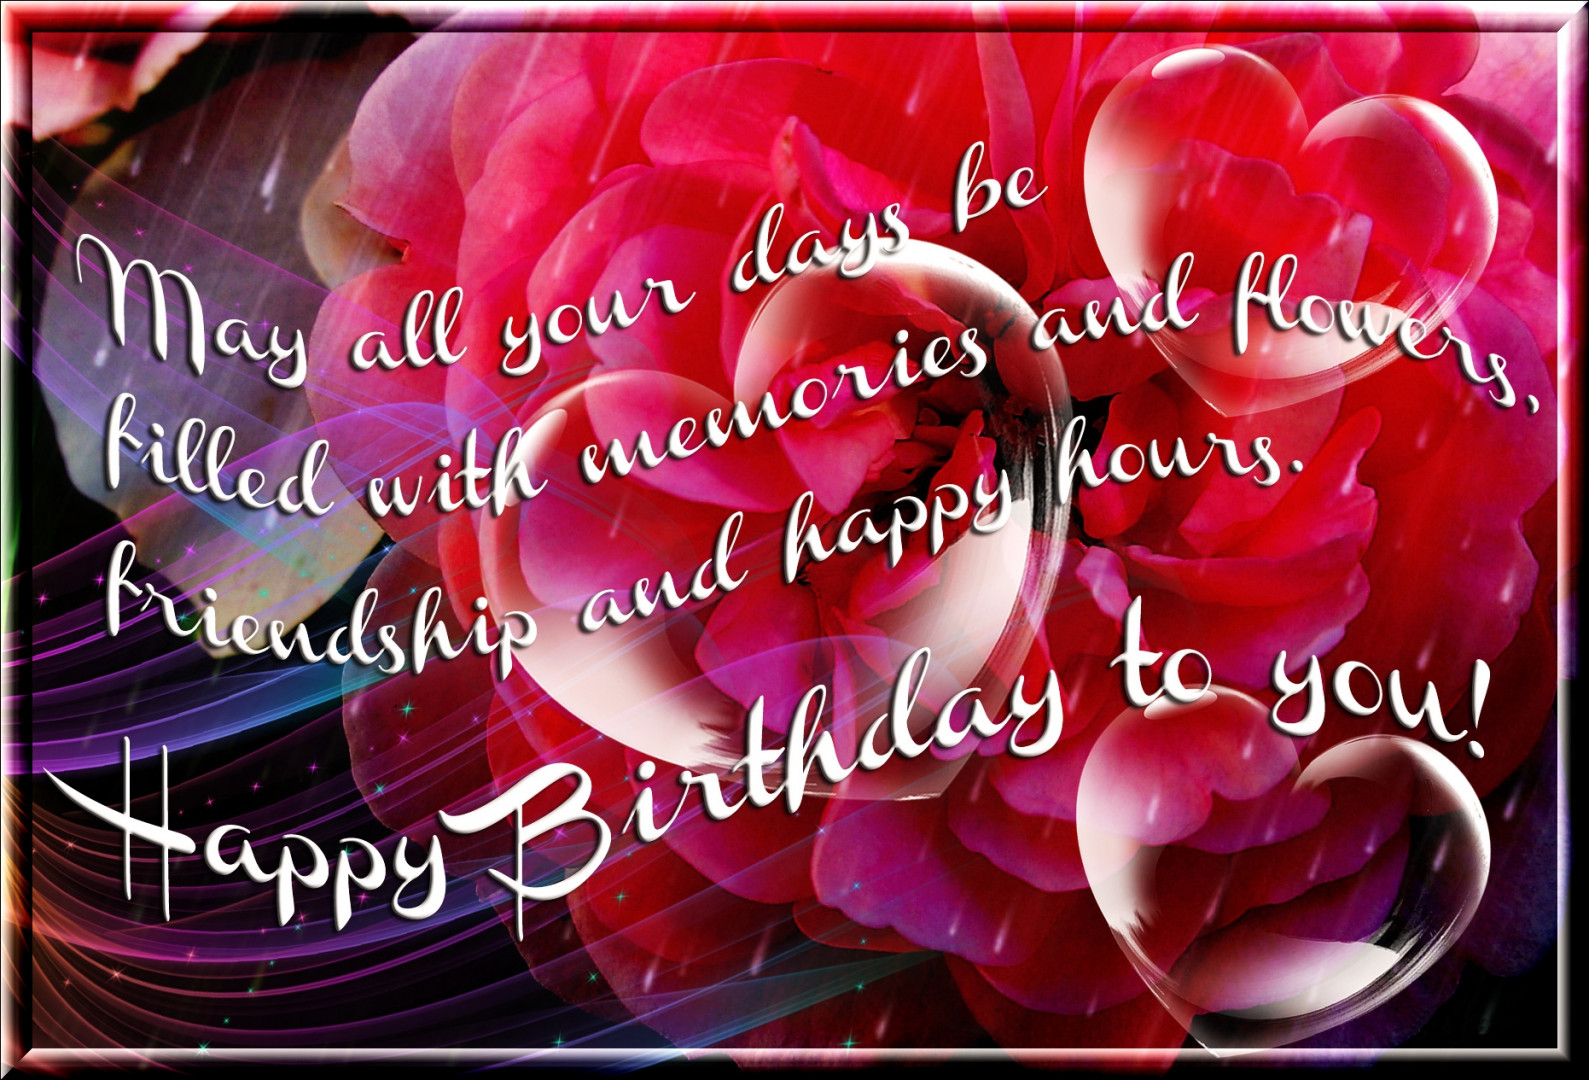 happy birthday wish picture download ; fresh-birthday-wishes-images-free-clipartsgram-of-happy-birthday-wish-image-download